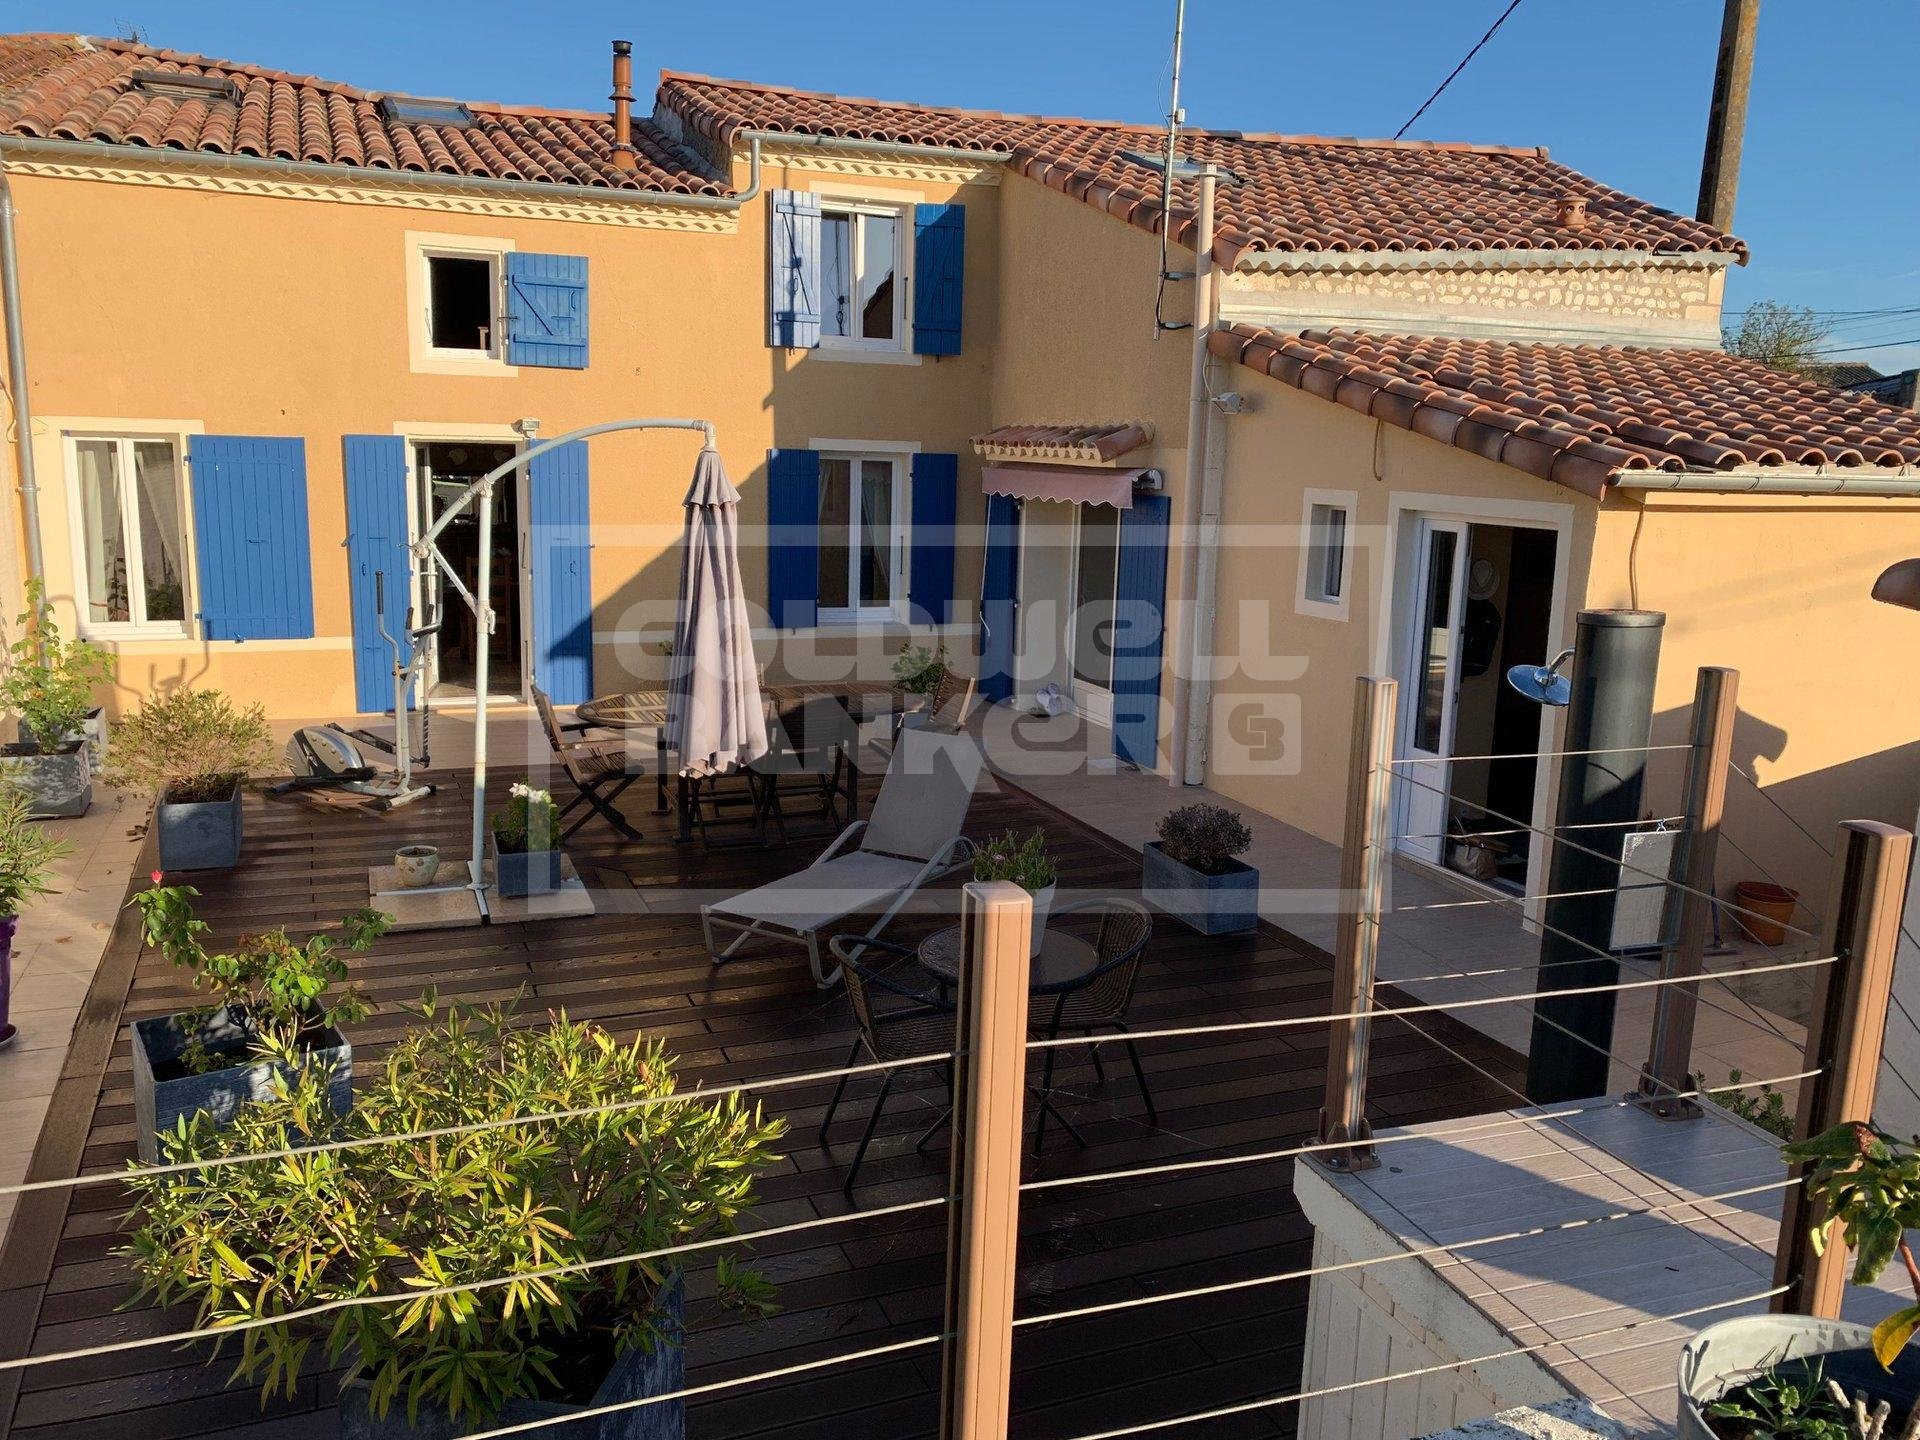 174 sqm 4 bedroom Stone House for Sale in Meschers sur Girond